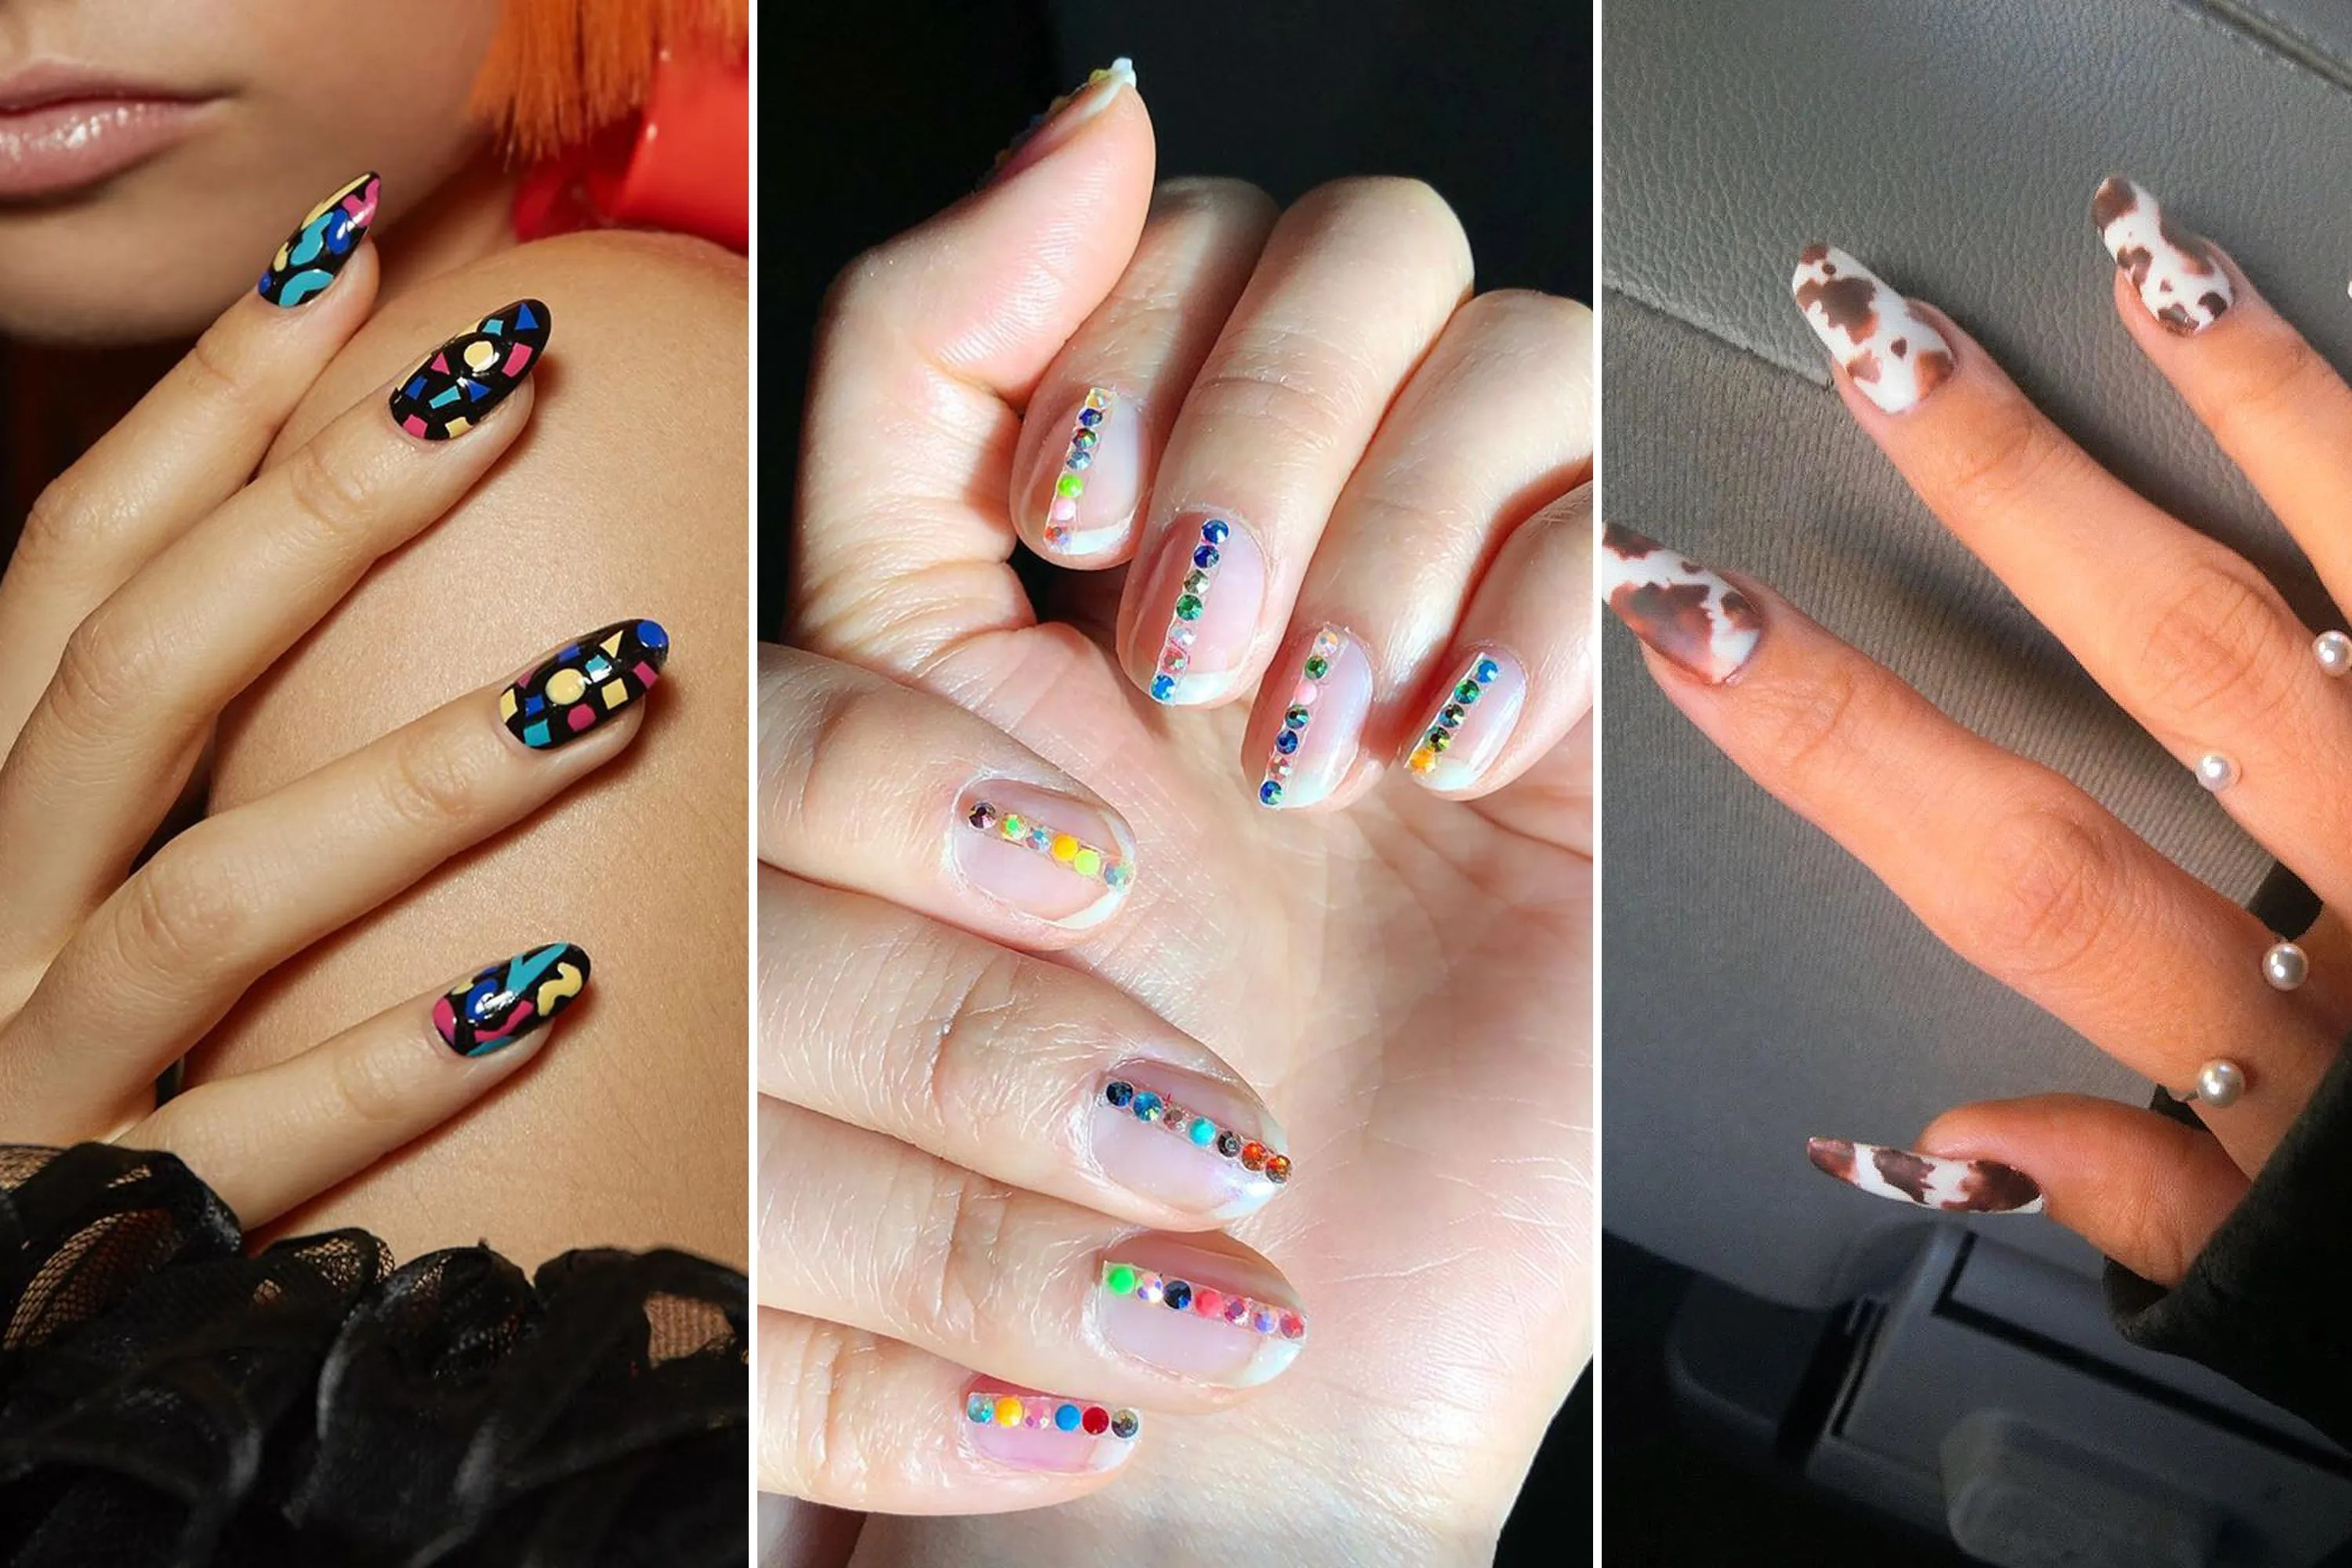 Biggest Nail Art Trends Of 2020 According To Nail Artists Allure